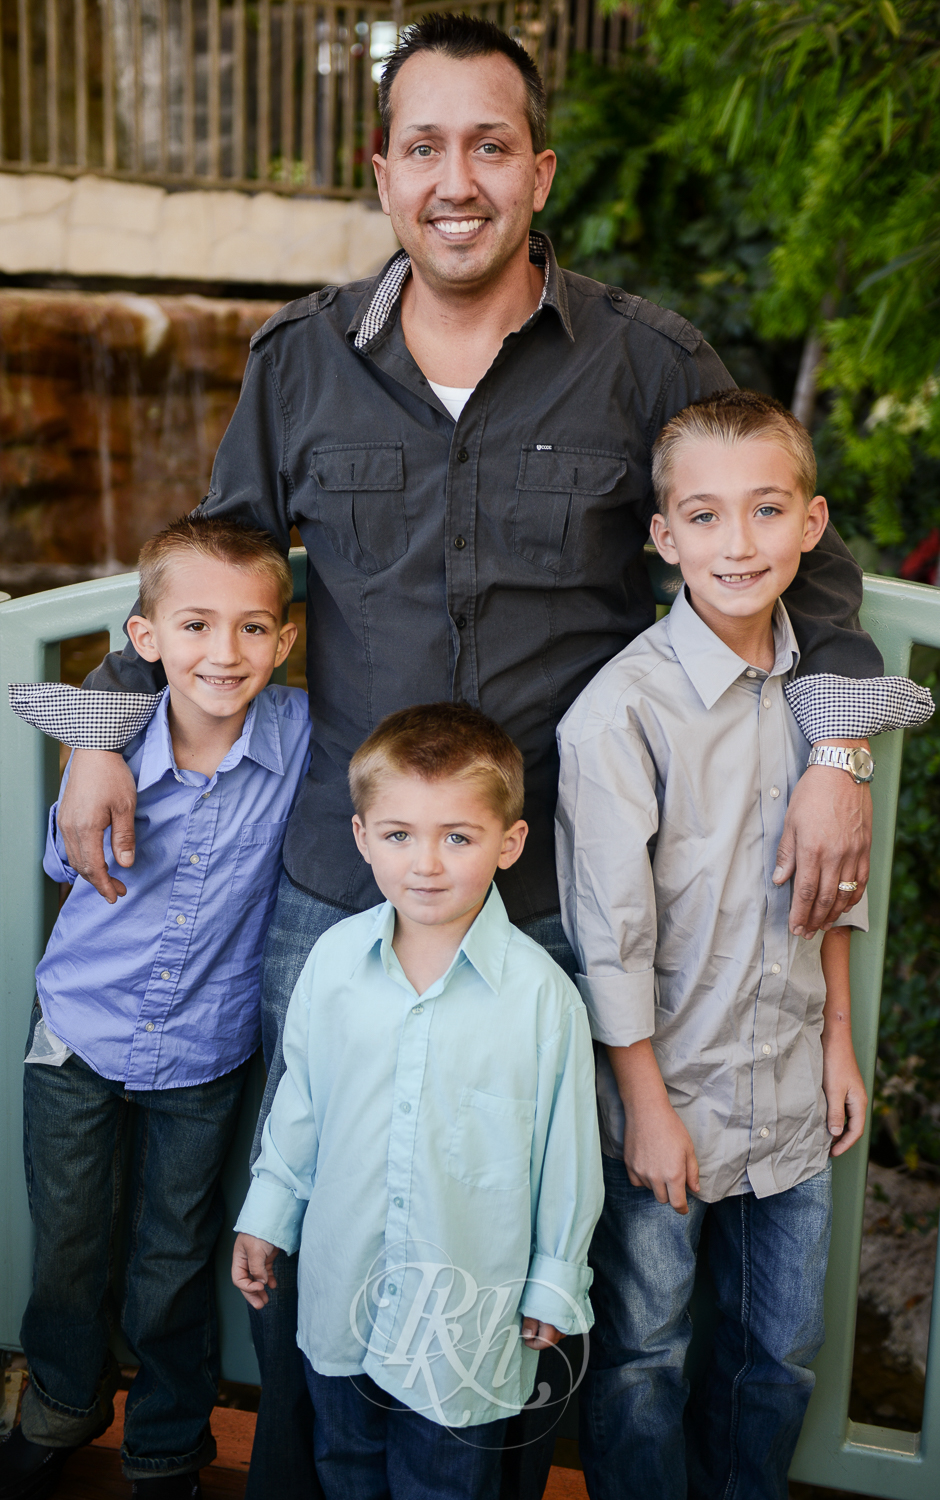 Woodbury Family Photography - Reyes - RKH Images-1